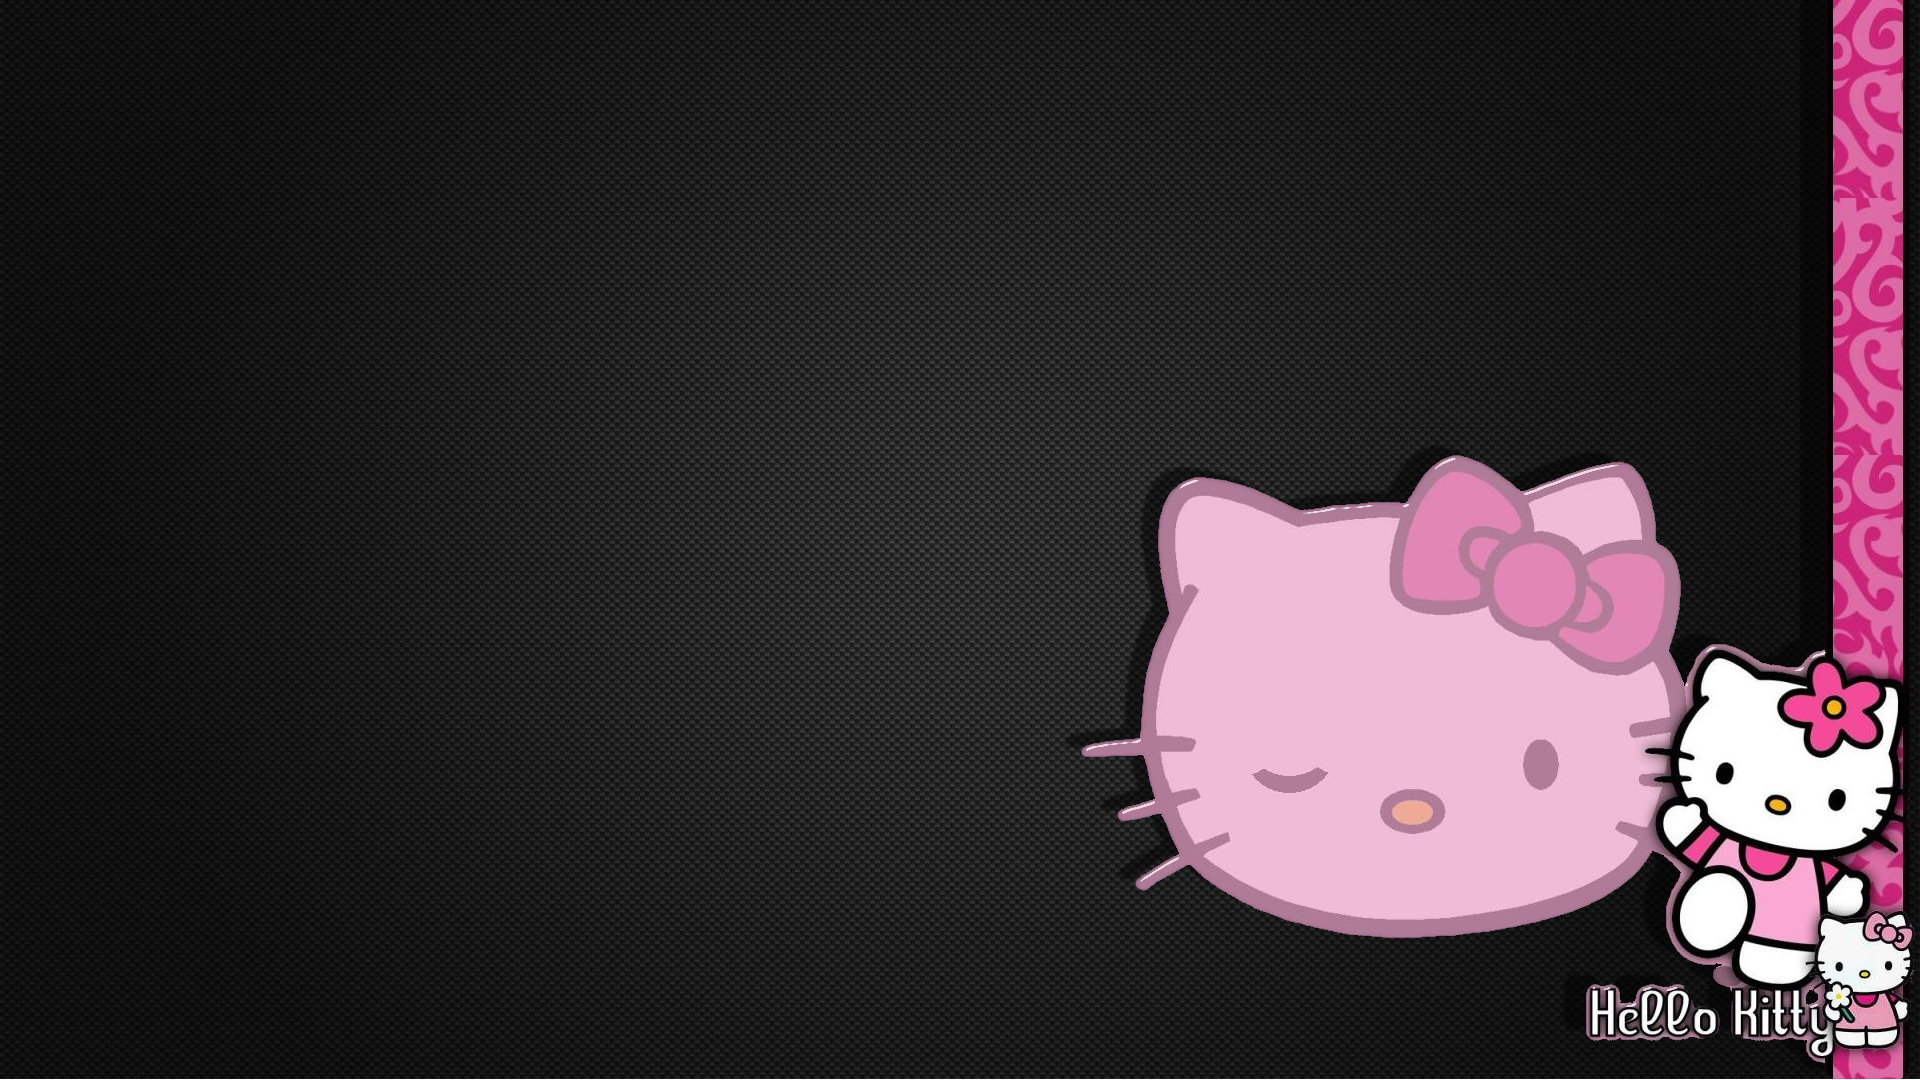 Hello kitty online images hello kitty hd wallpaper and background